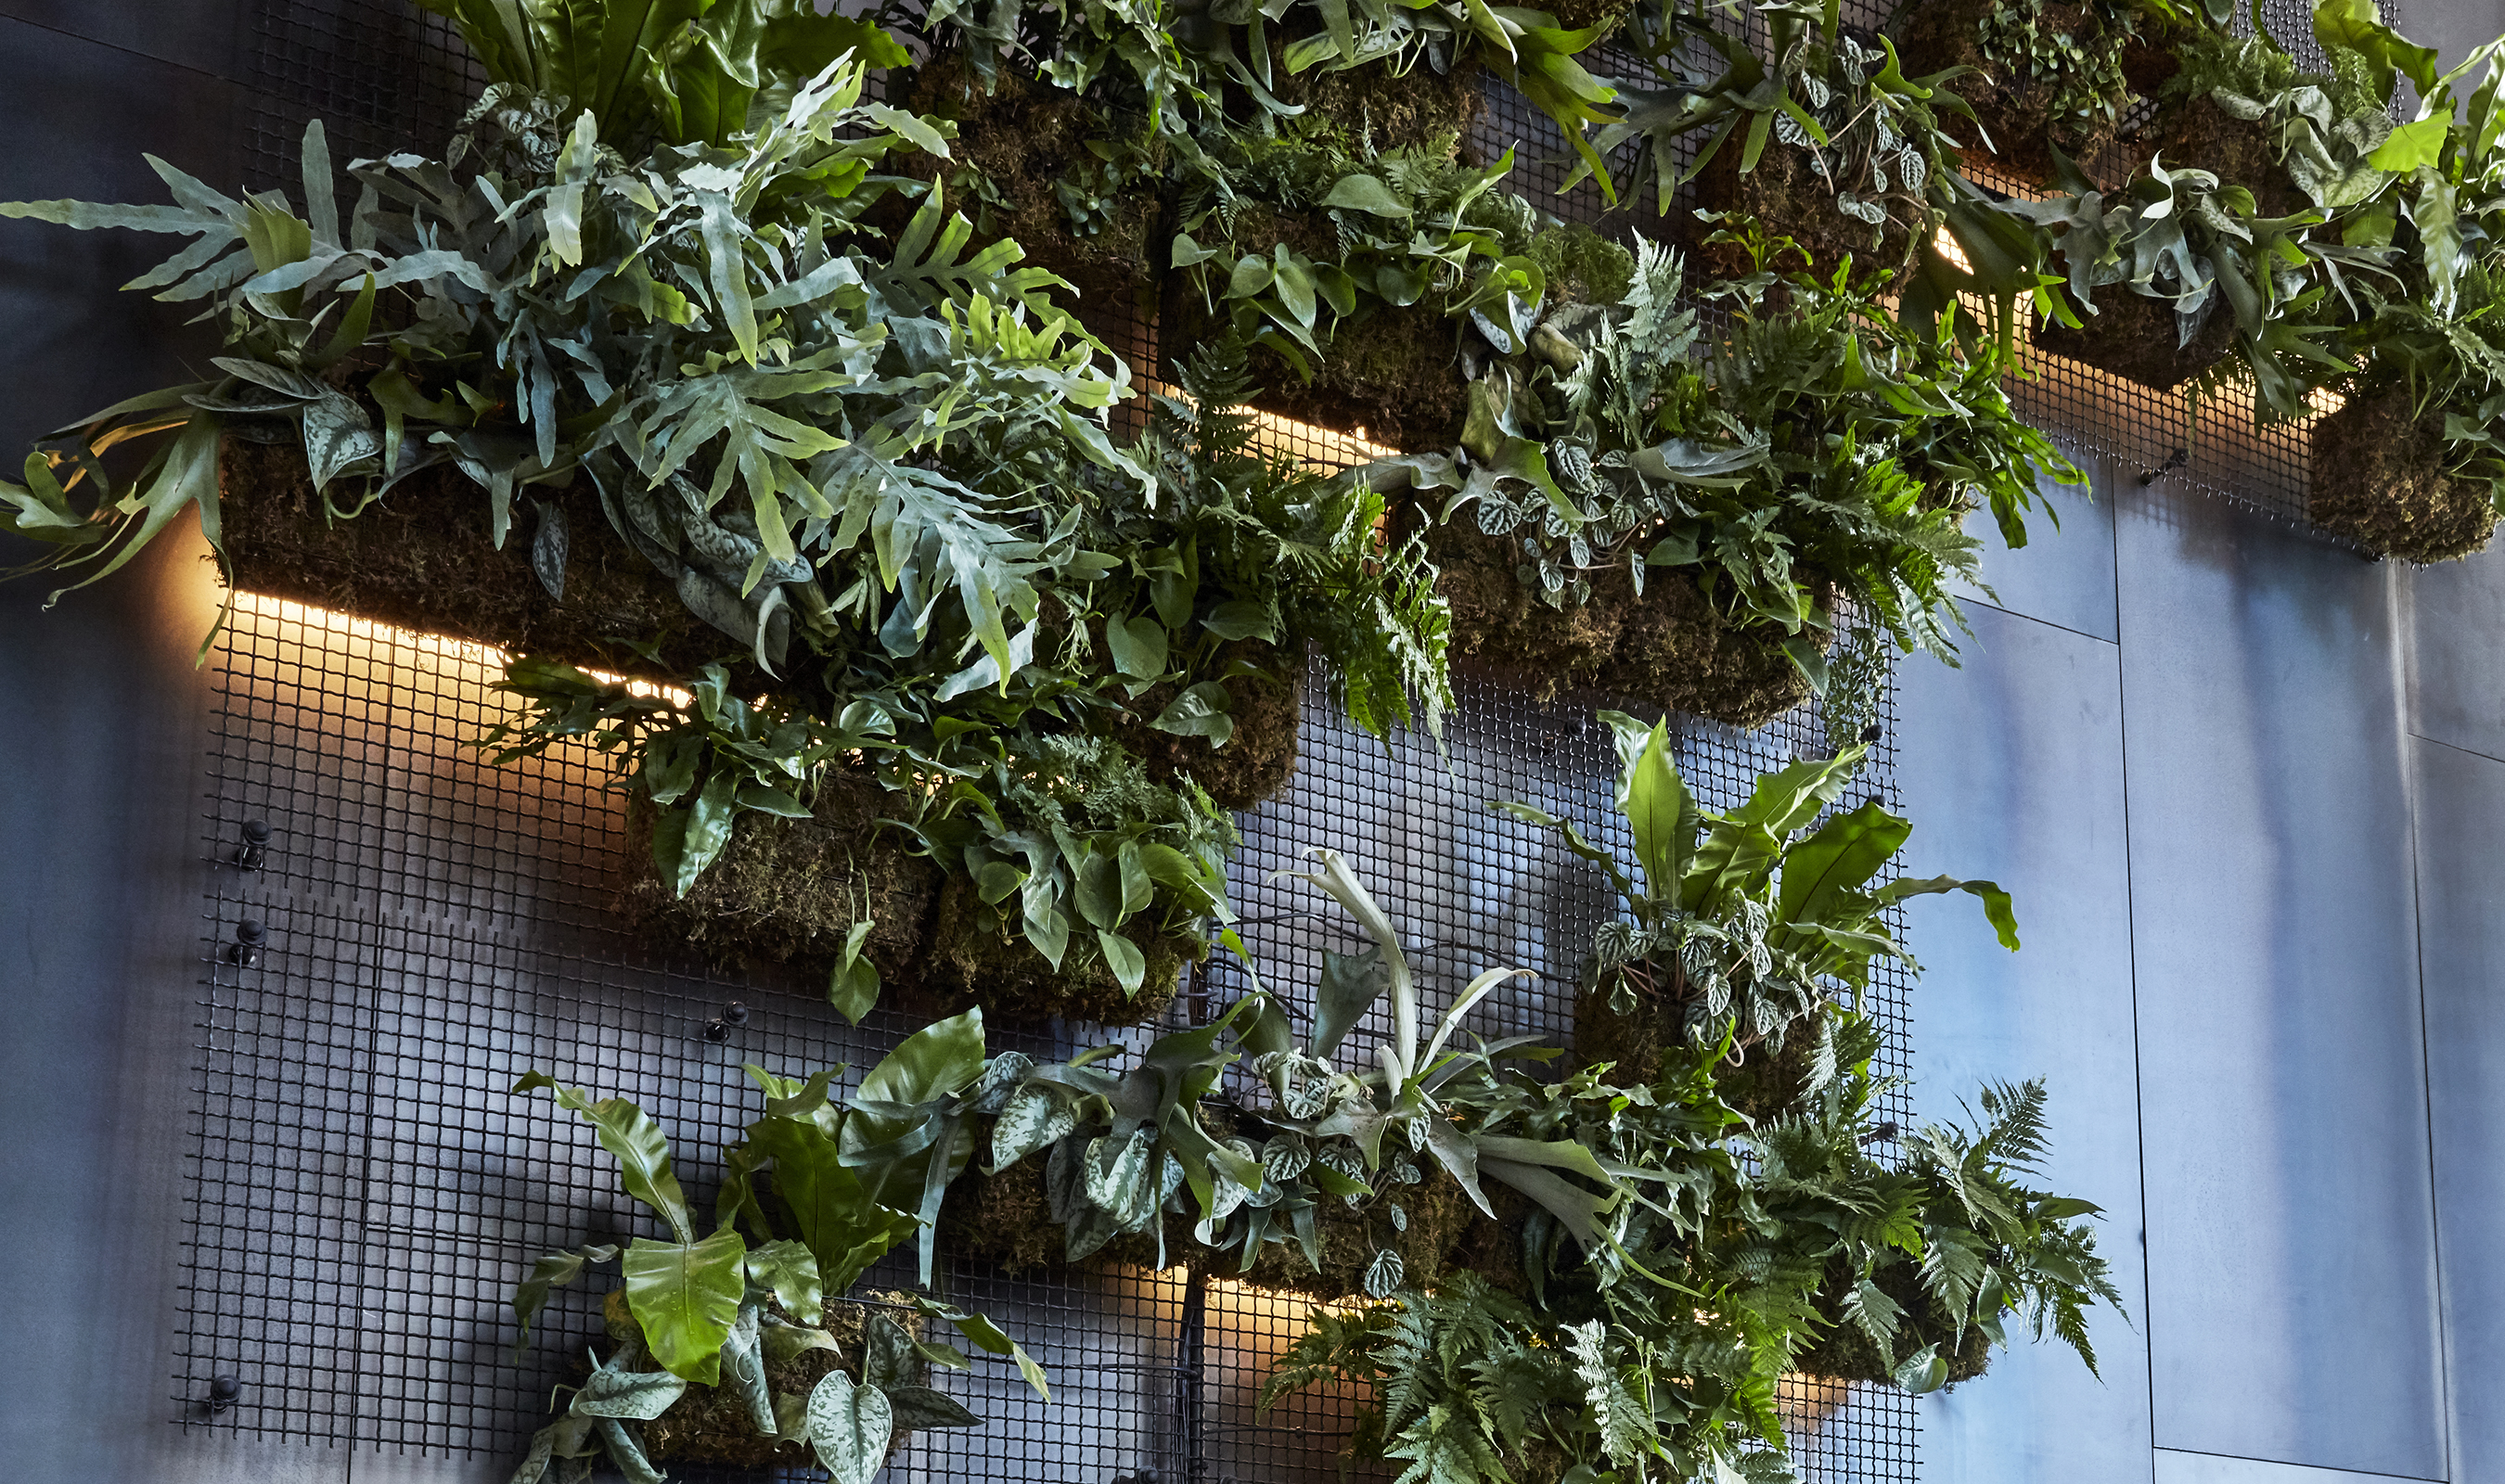 The vertical wall blends industrial elements with natural ones against a backdrop of concrete and steel and is laid out in such a way to ensure that vegetation can grow organically over the canvas.